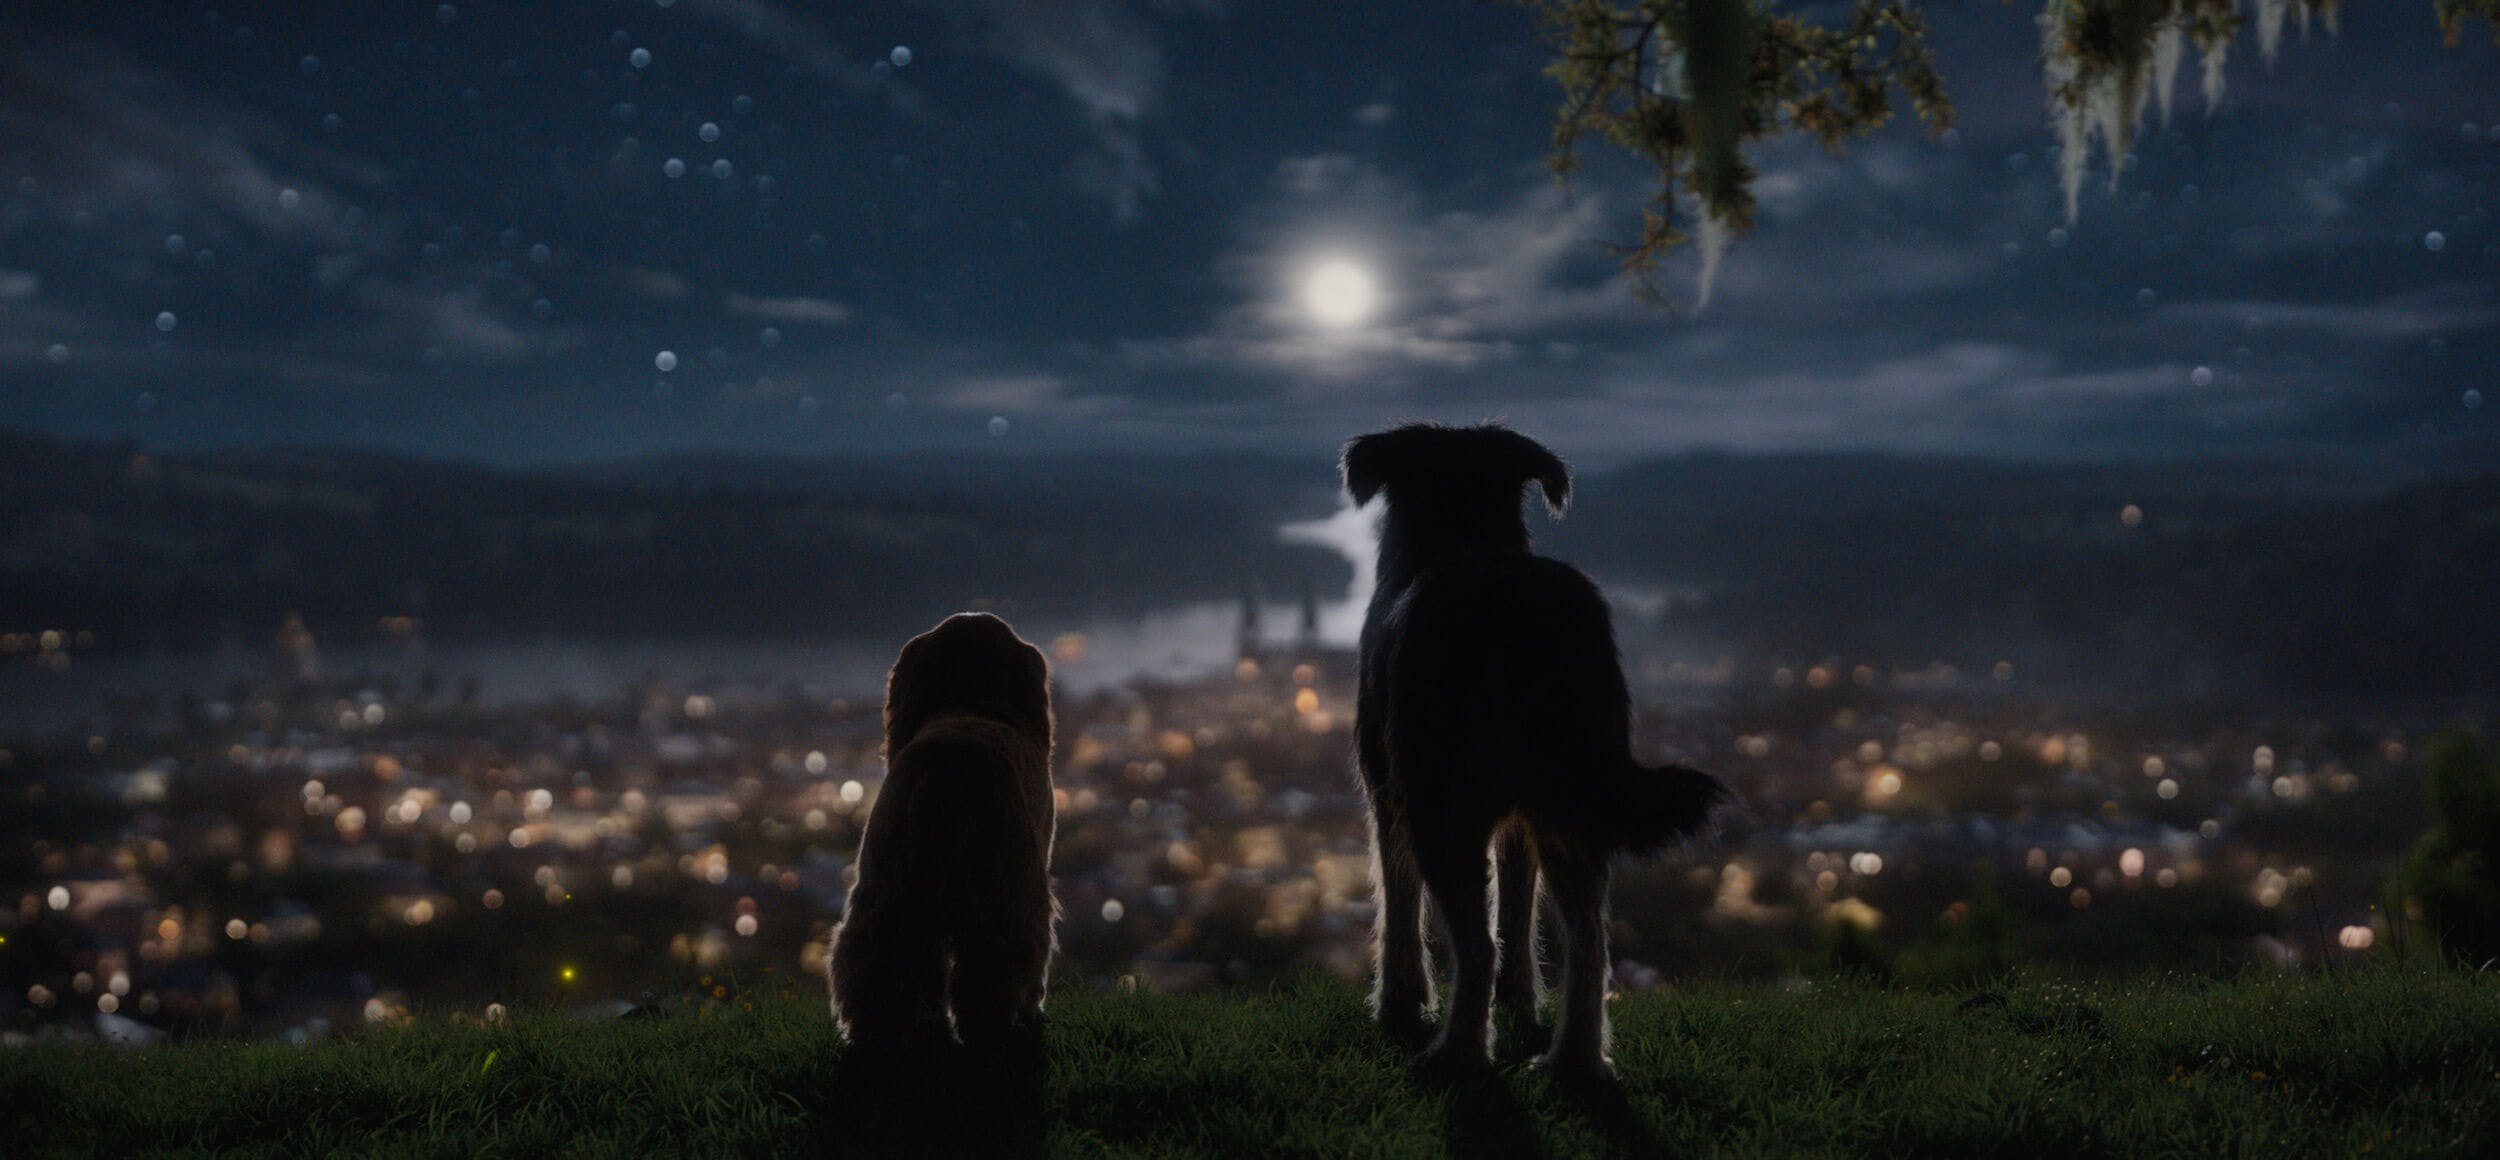 disney plus lady and the tramp 2019 review